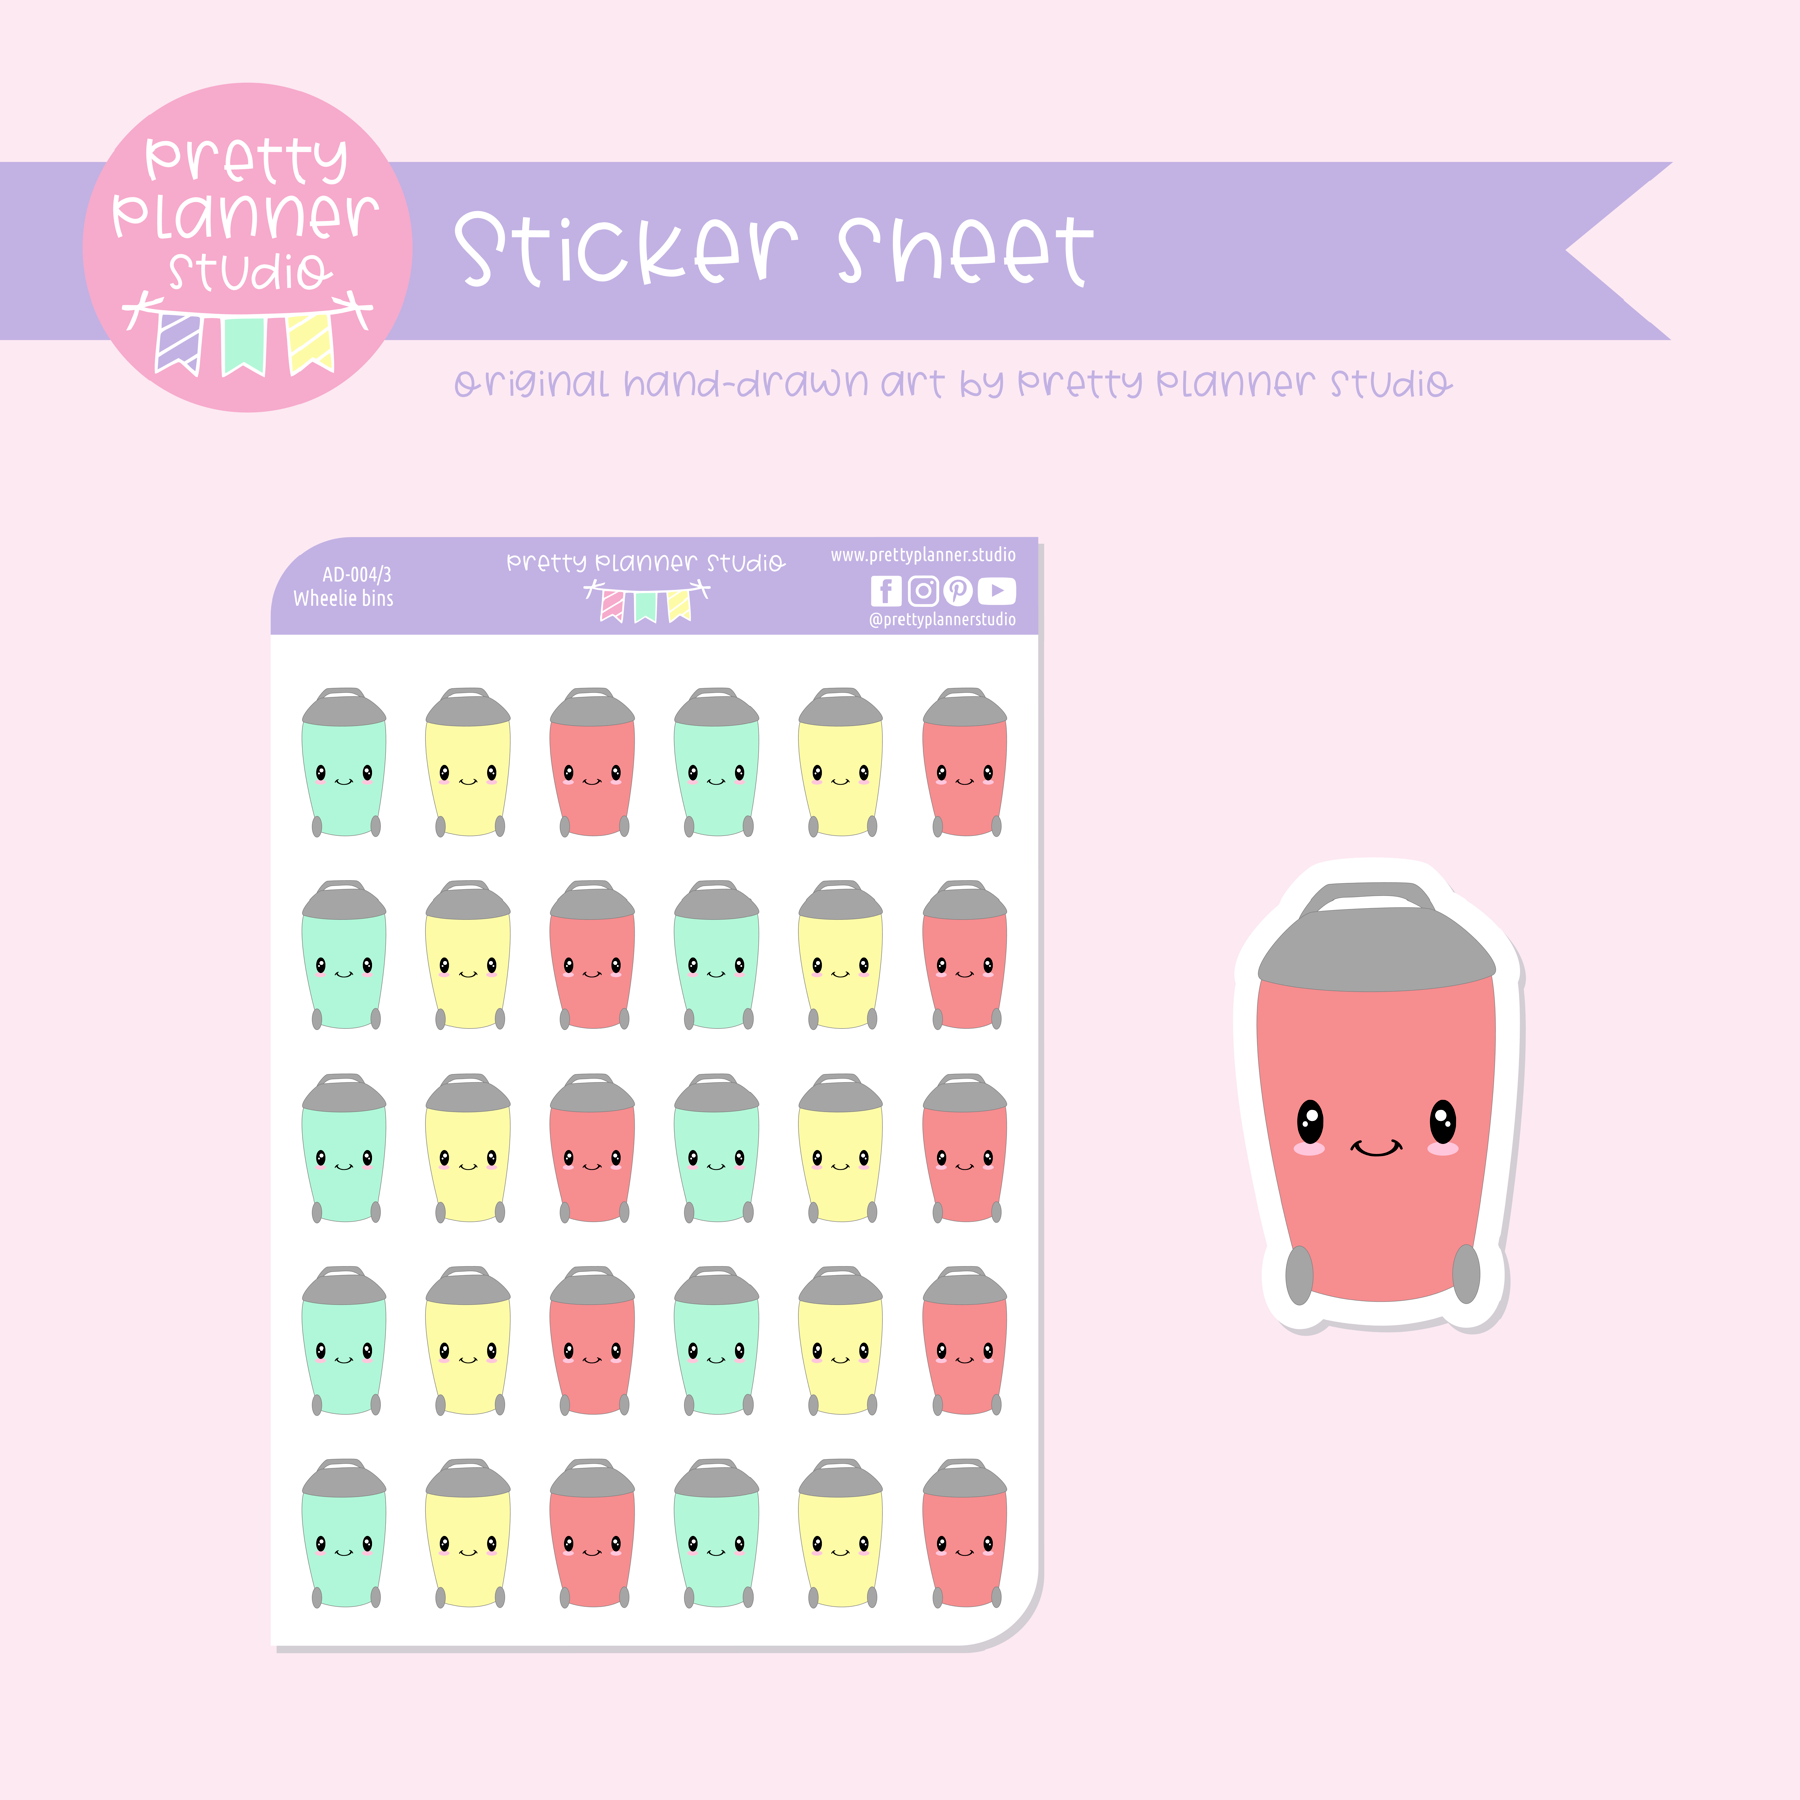 Adulting - wheelie bin | sticker sheet | AD-004/3